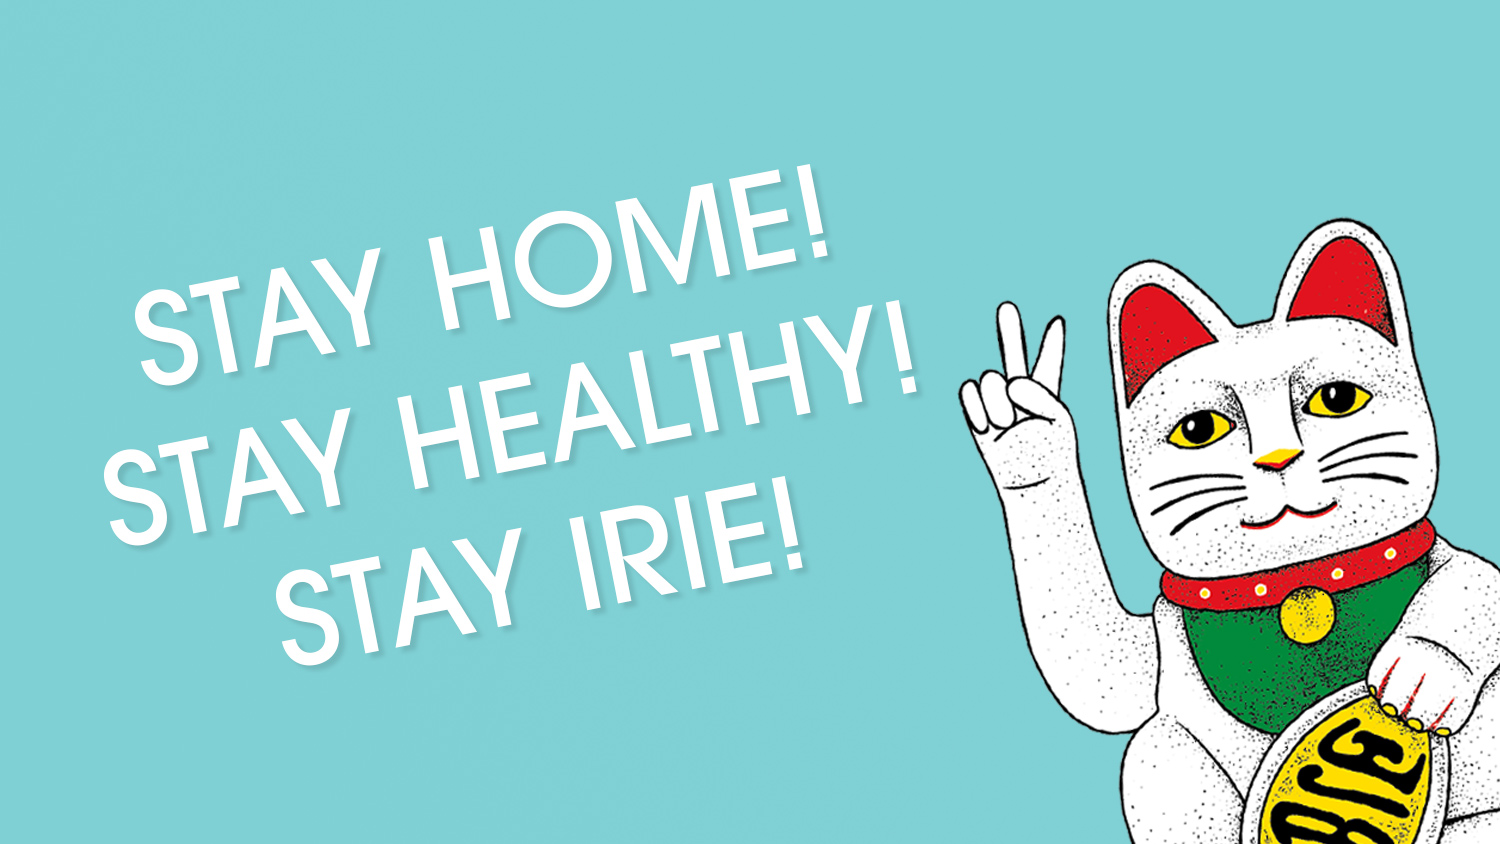 Stay Home Stay Healthy Stay IRIE